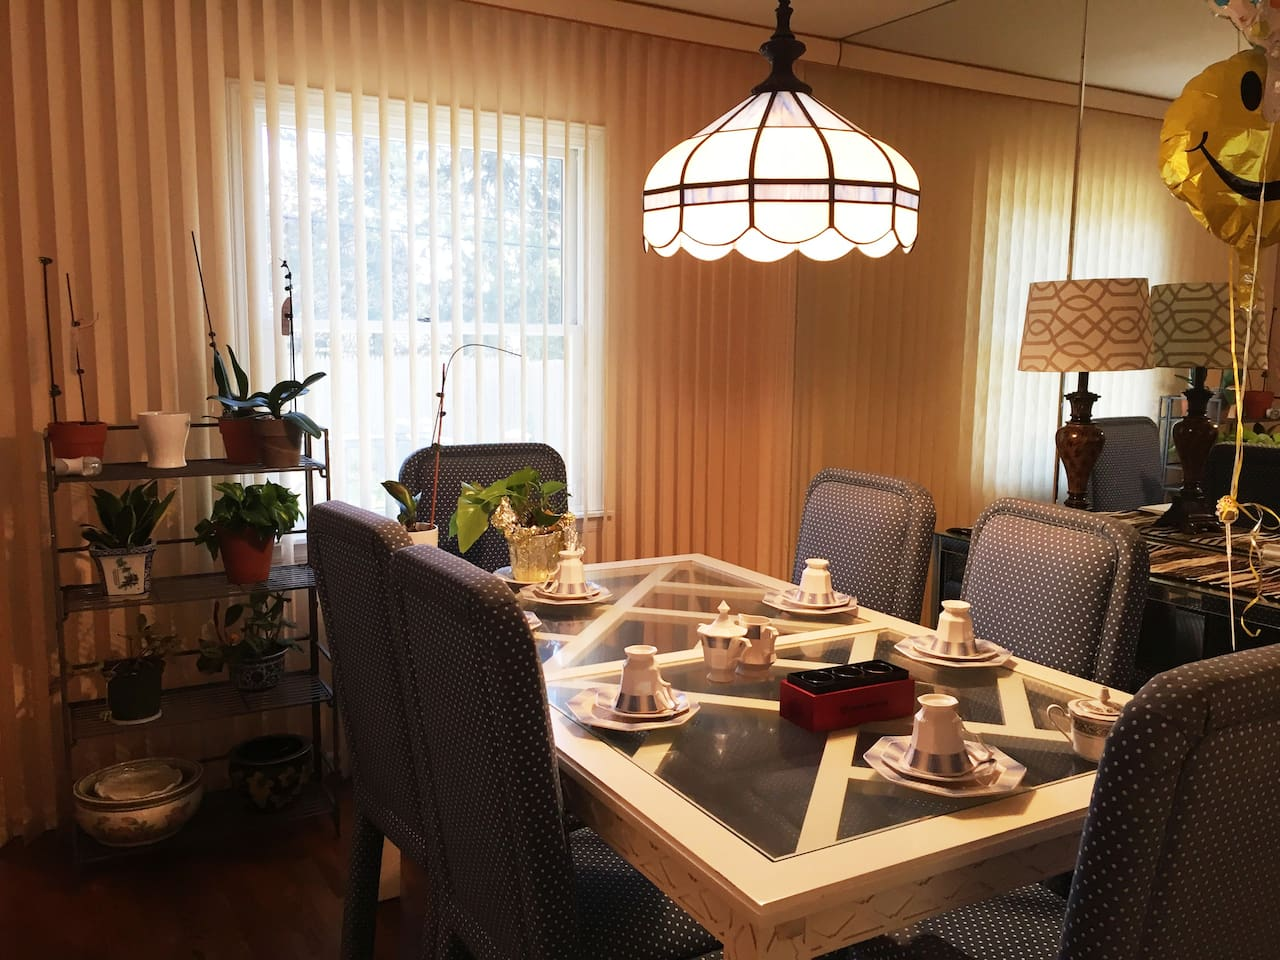 Dining space, open for common use